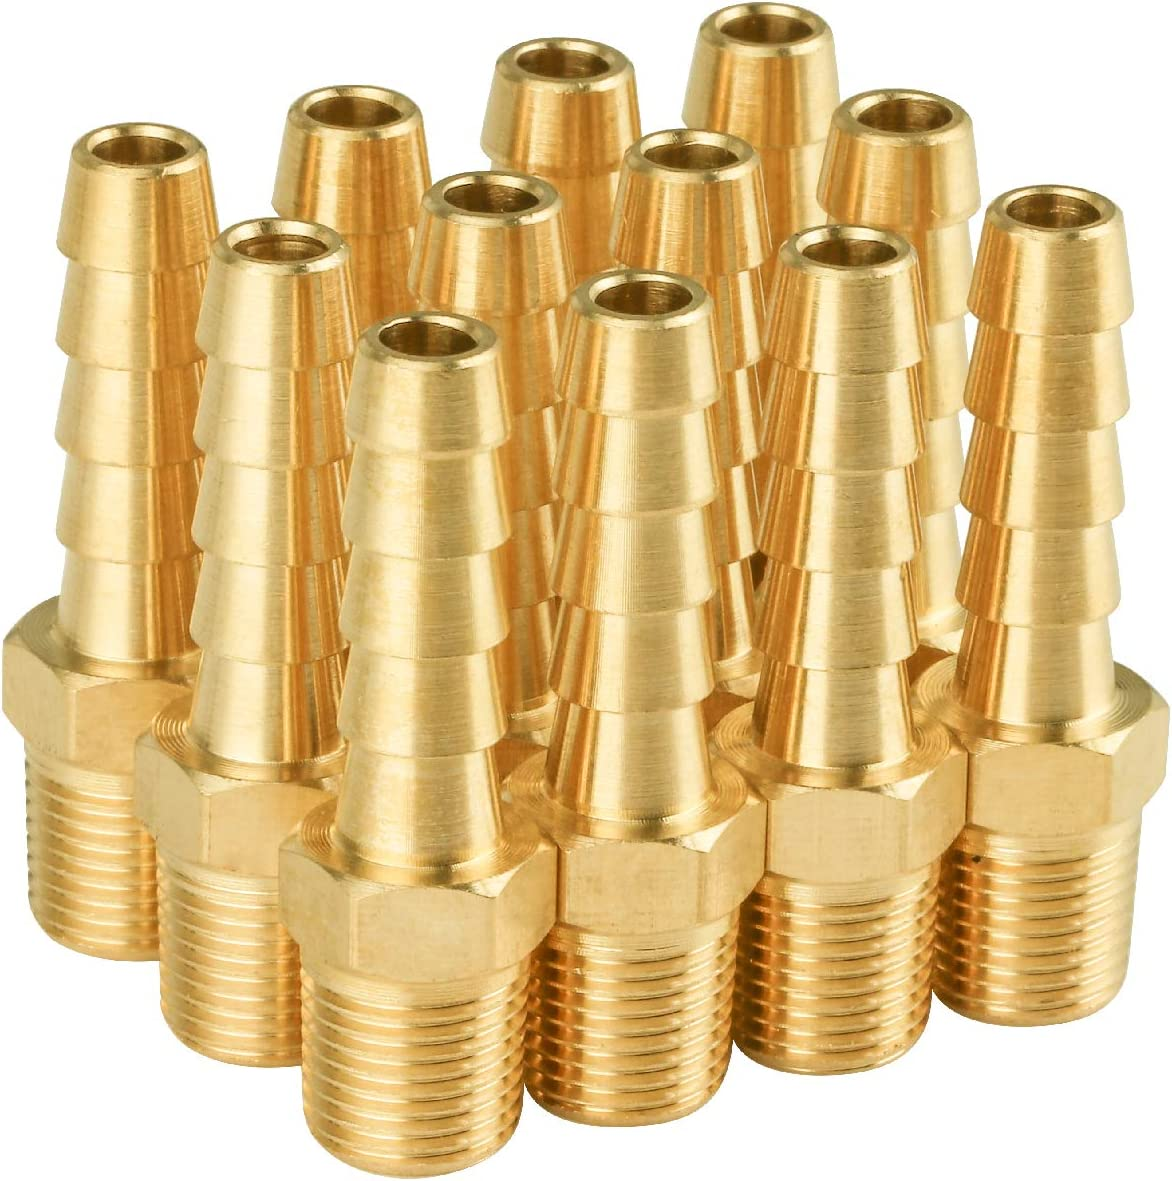 """SUNGATOR 12-Pack Brass Hose Fitting,1/8"""" NPT to 1/4"""" Barb, Hose Barb Adapter,Male Brass Pipe Fittings"""